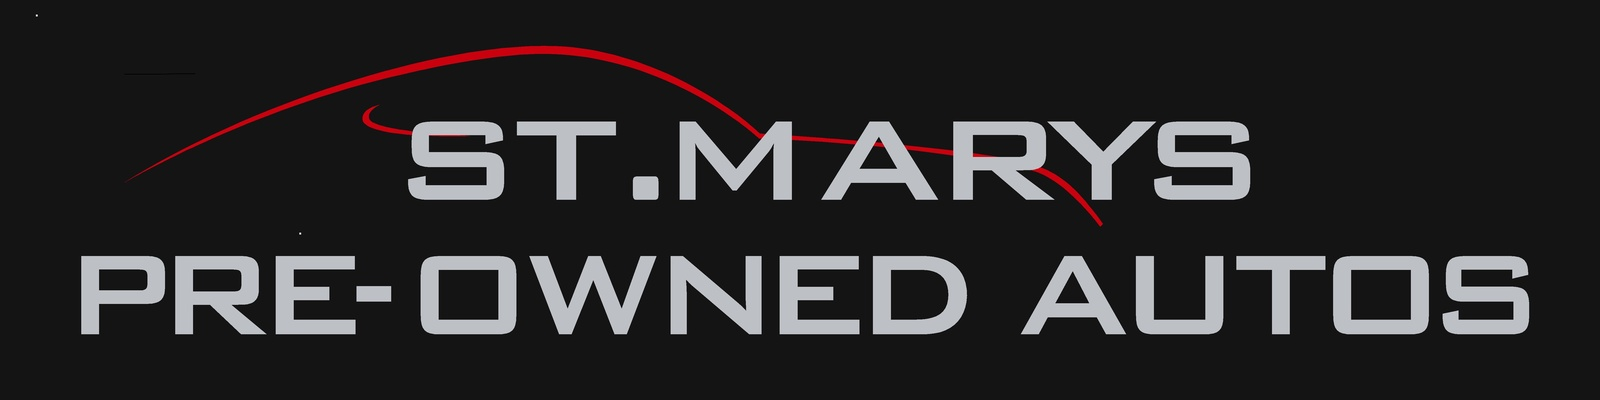 st marys pre owned autos saint marys wv read consumer reviews browse used and new cars for. Black Bedroom Furniture Sets. Home Design Ideas